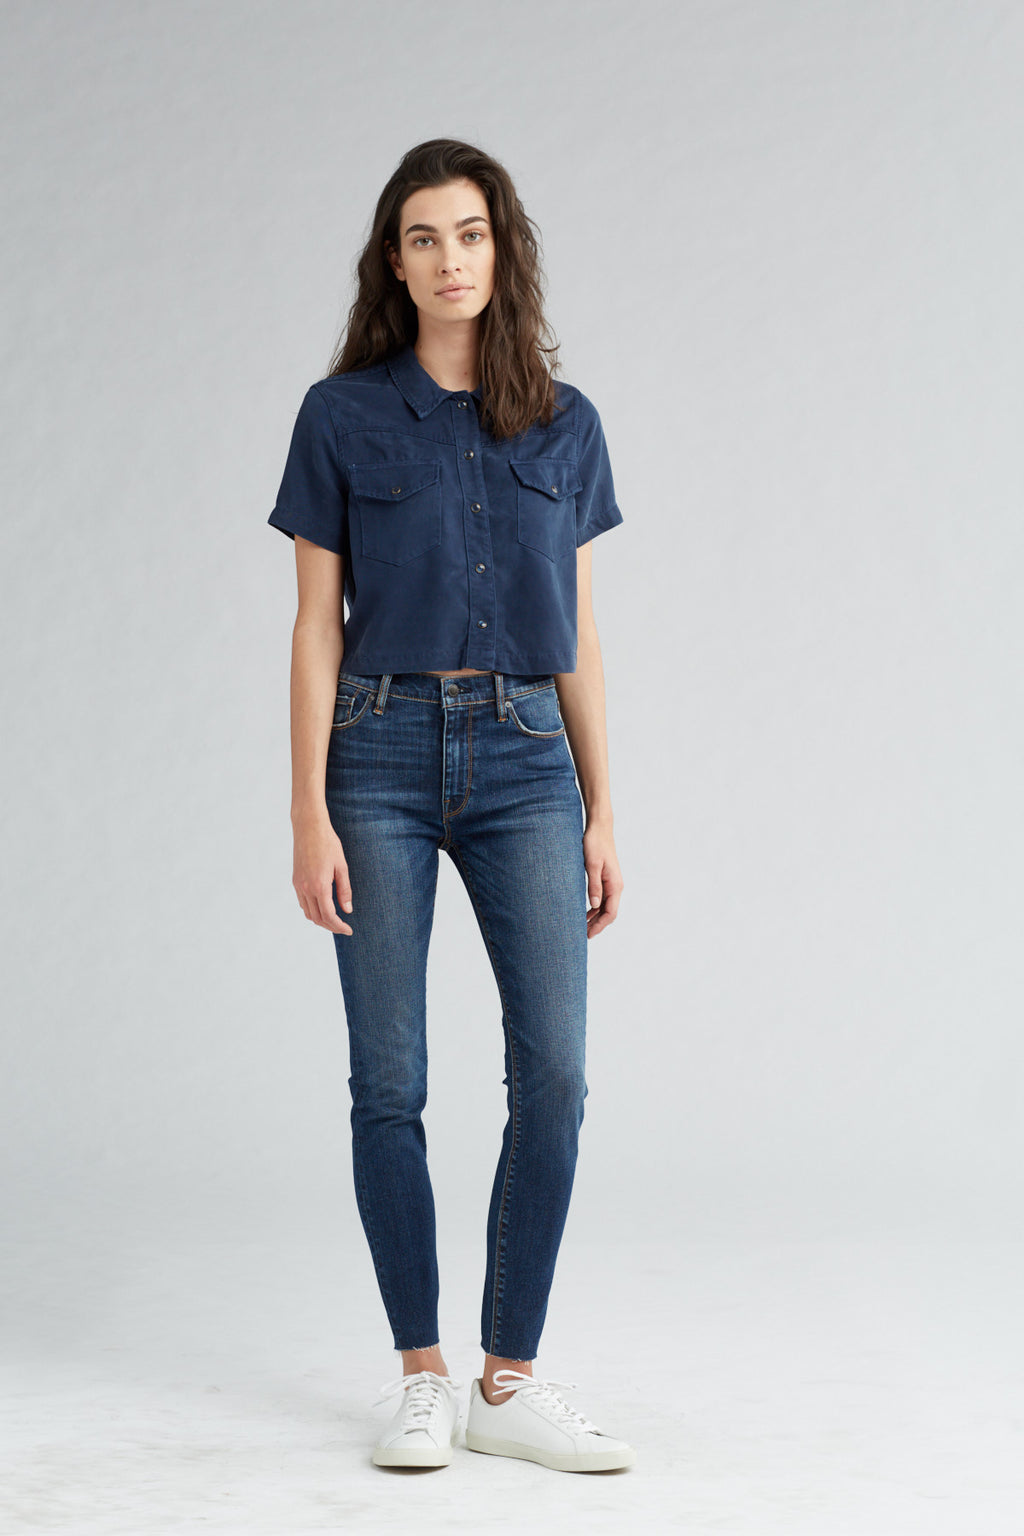 BARBARA HIGH RISE SUPER SKINNY ANKLE JEAN - VAGABOND RAW HEM - Image 1